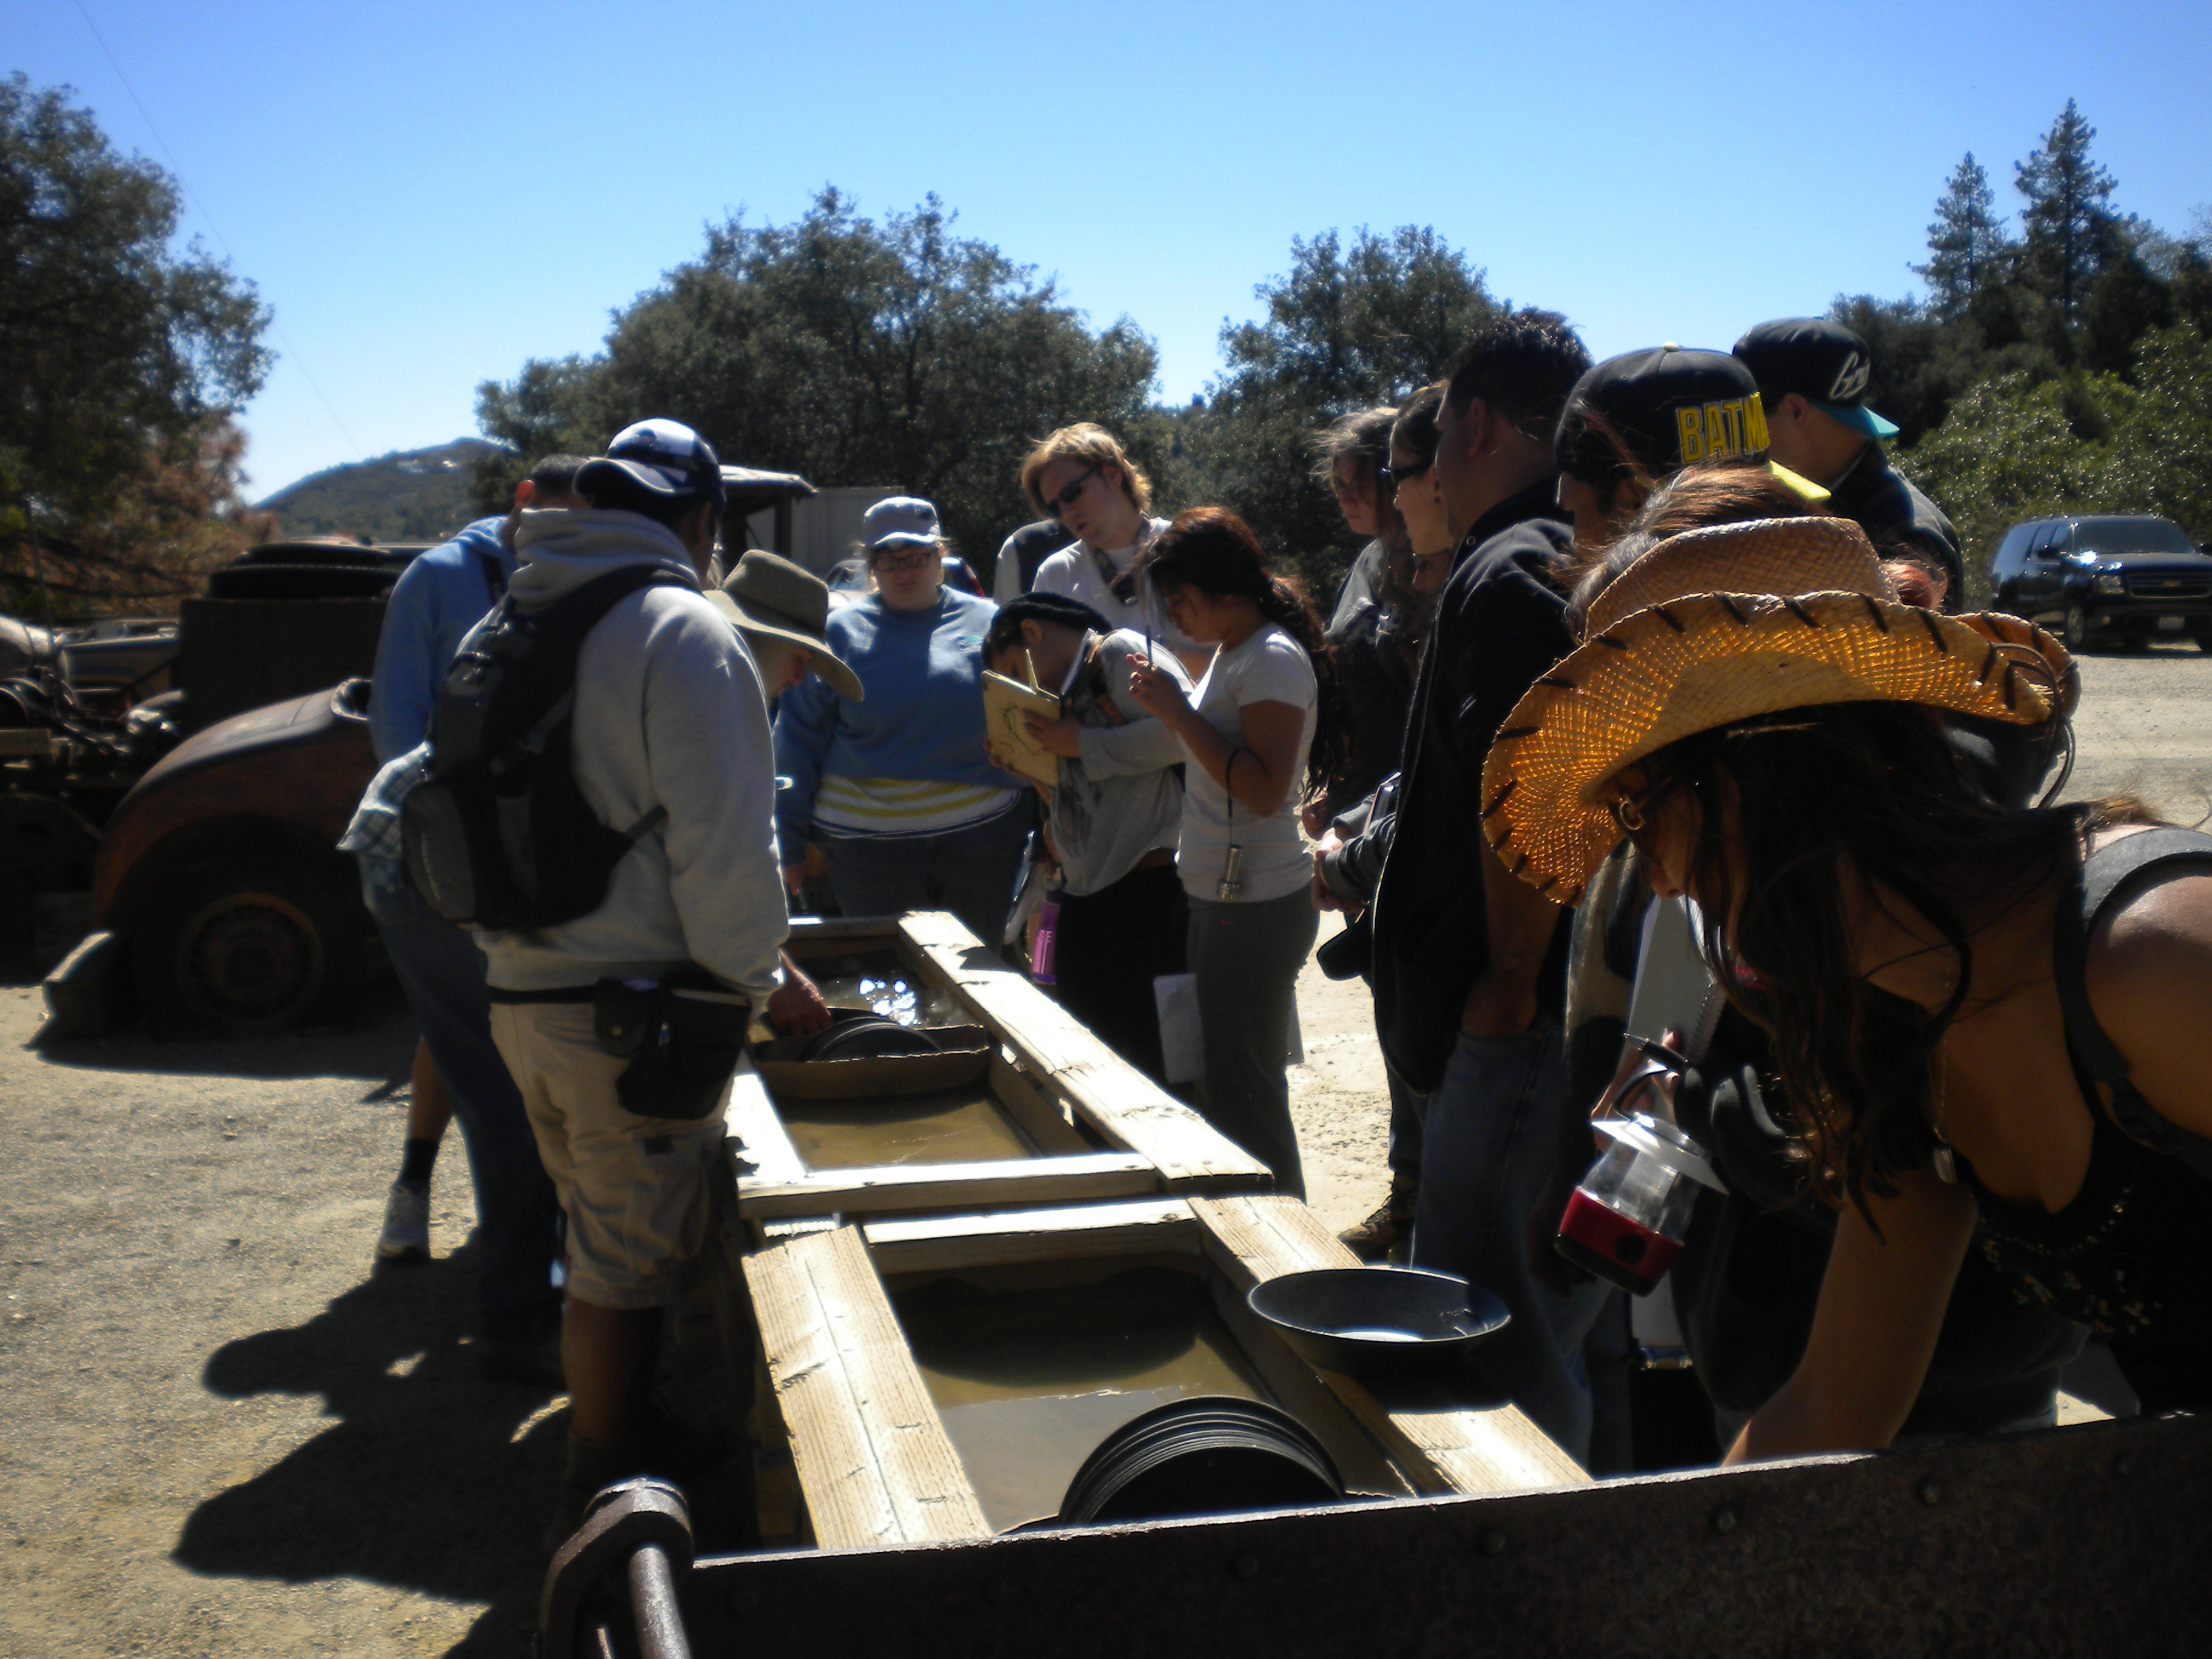 Students Panning for Gold in Julian, CA